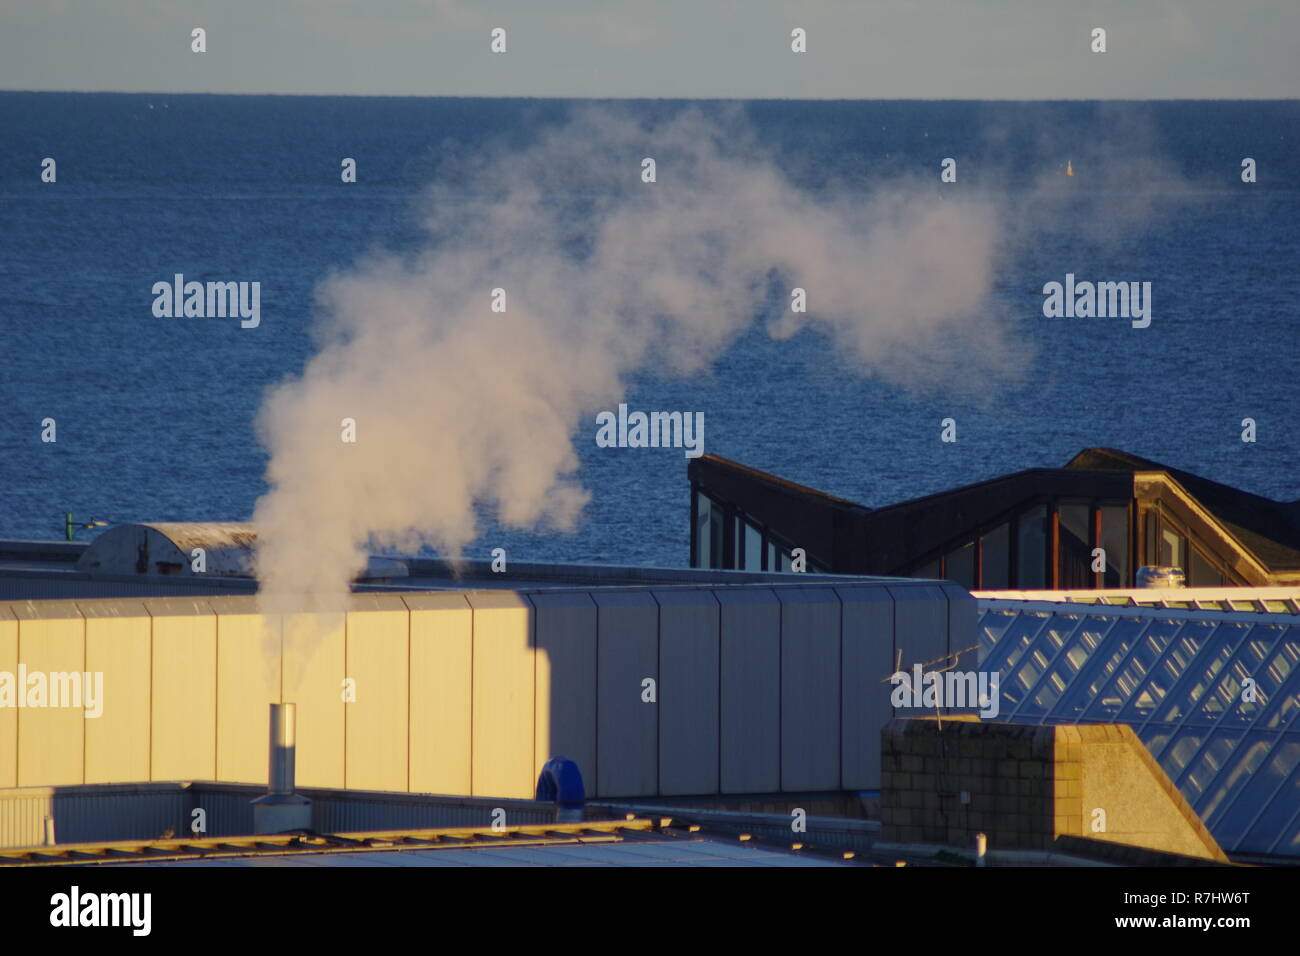 Steam Chimney on the Roof of Aberdeen Beach Leisure Centre on an Autumn Evening. Scotland, UK. - Stock Image